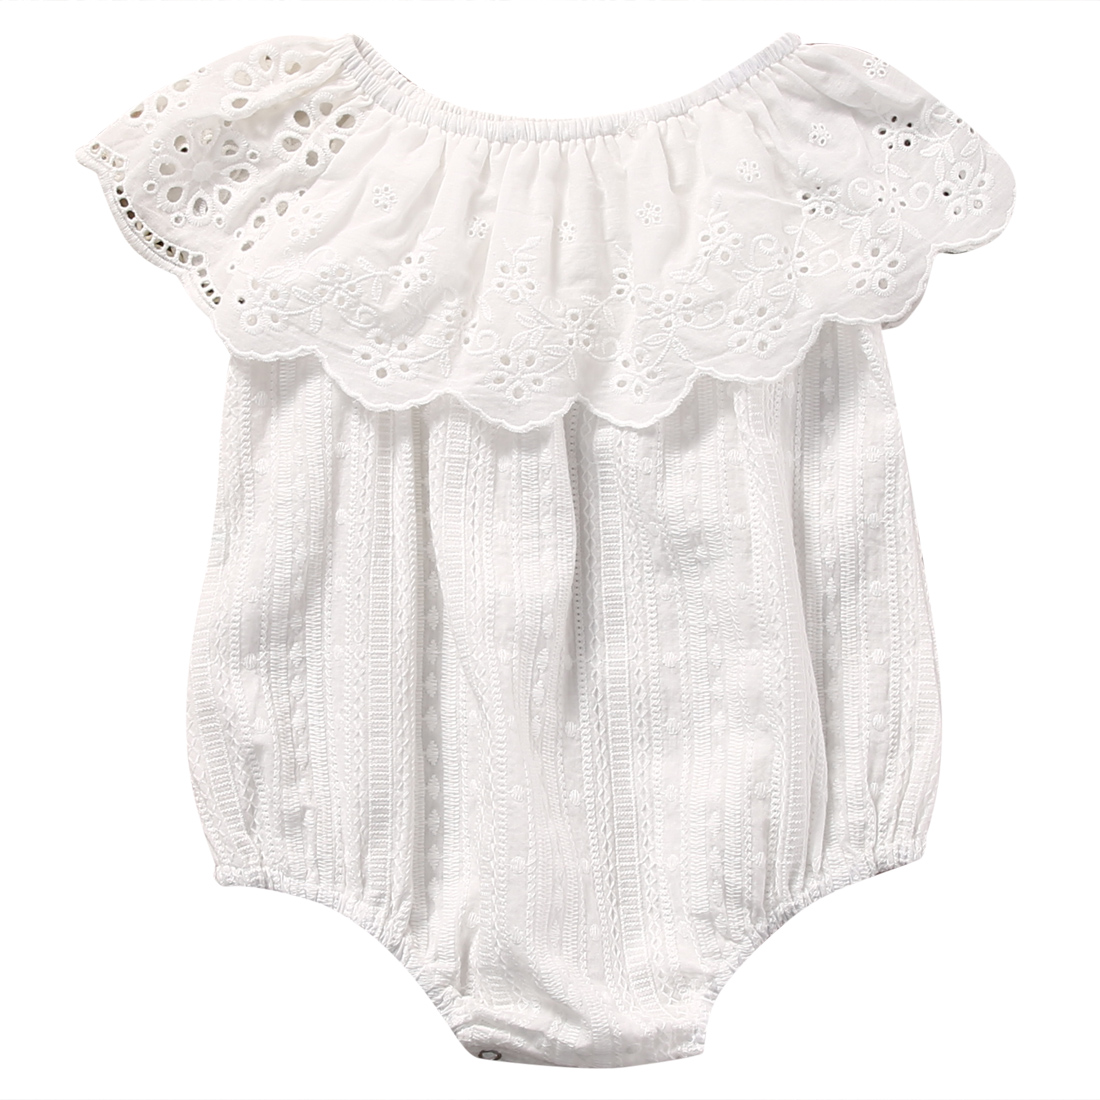 2017 Summer Newborn Baby Girl White Lace Romper Jumpsuit Floral Infant Clothes Outfit Sunsuit newborn infant baby girl clothes strap lace floral romper jumpsuit outfit summer cotton backless one pieces outfit baby onesie